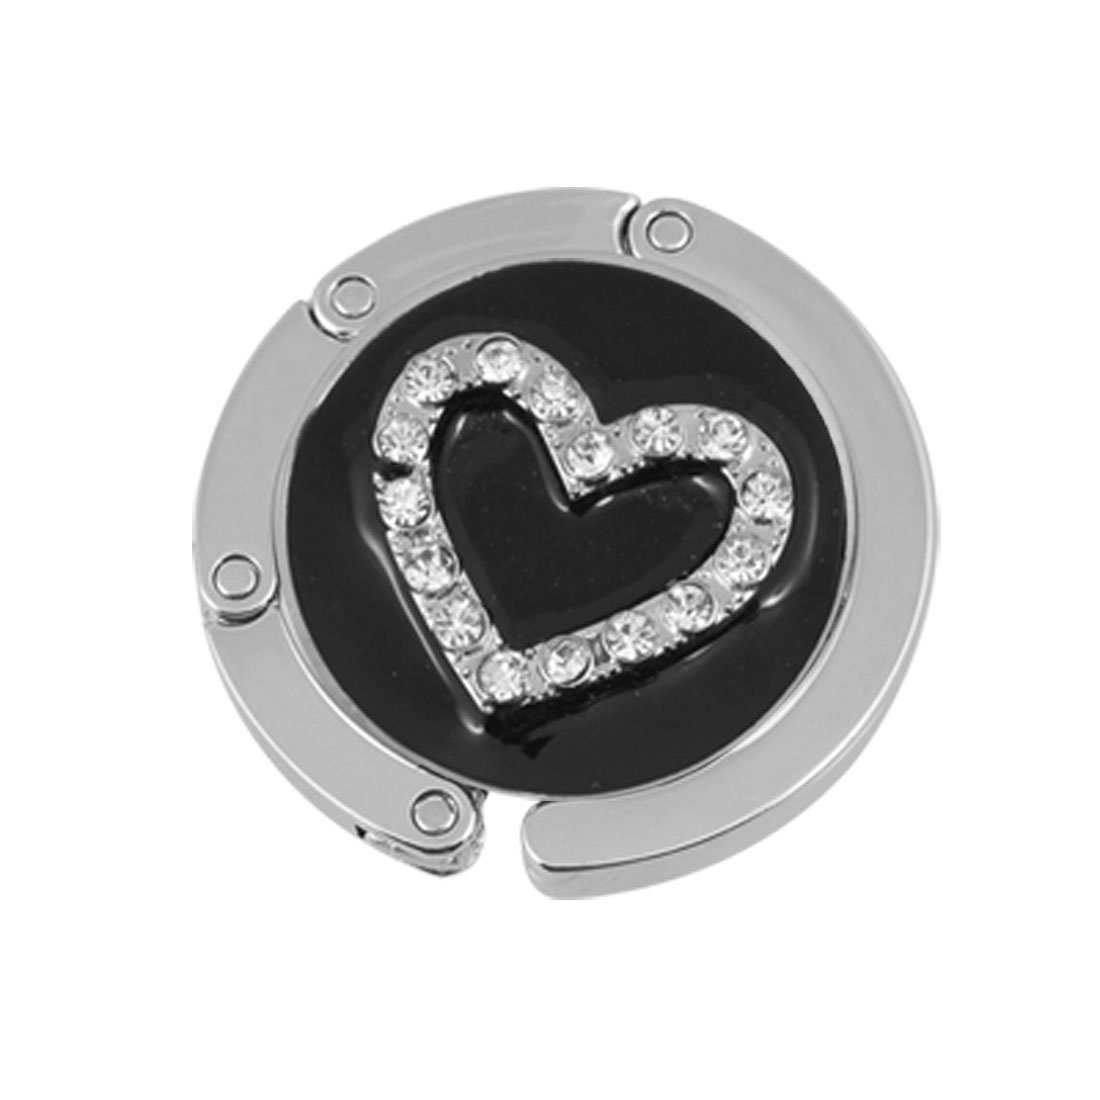 Glittery Rhinestone Heart Detail Black Foldable Handbag Hook Table Hanger